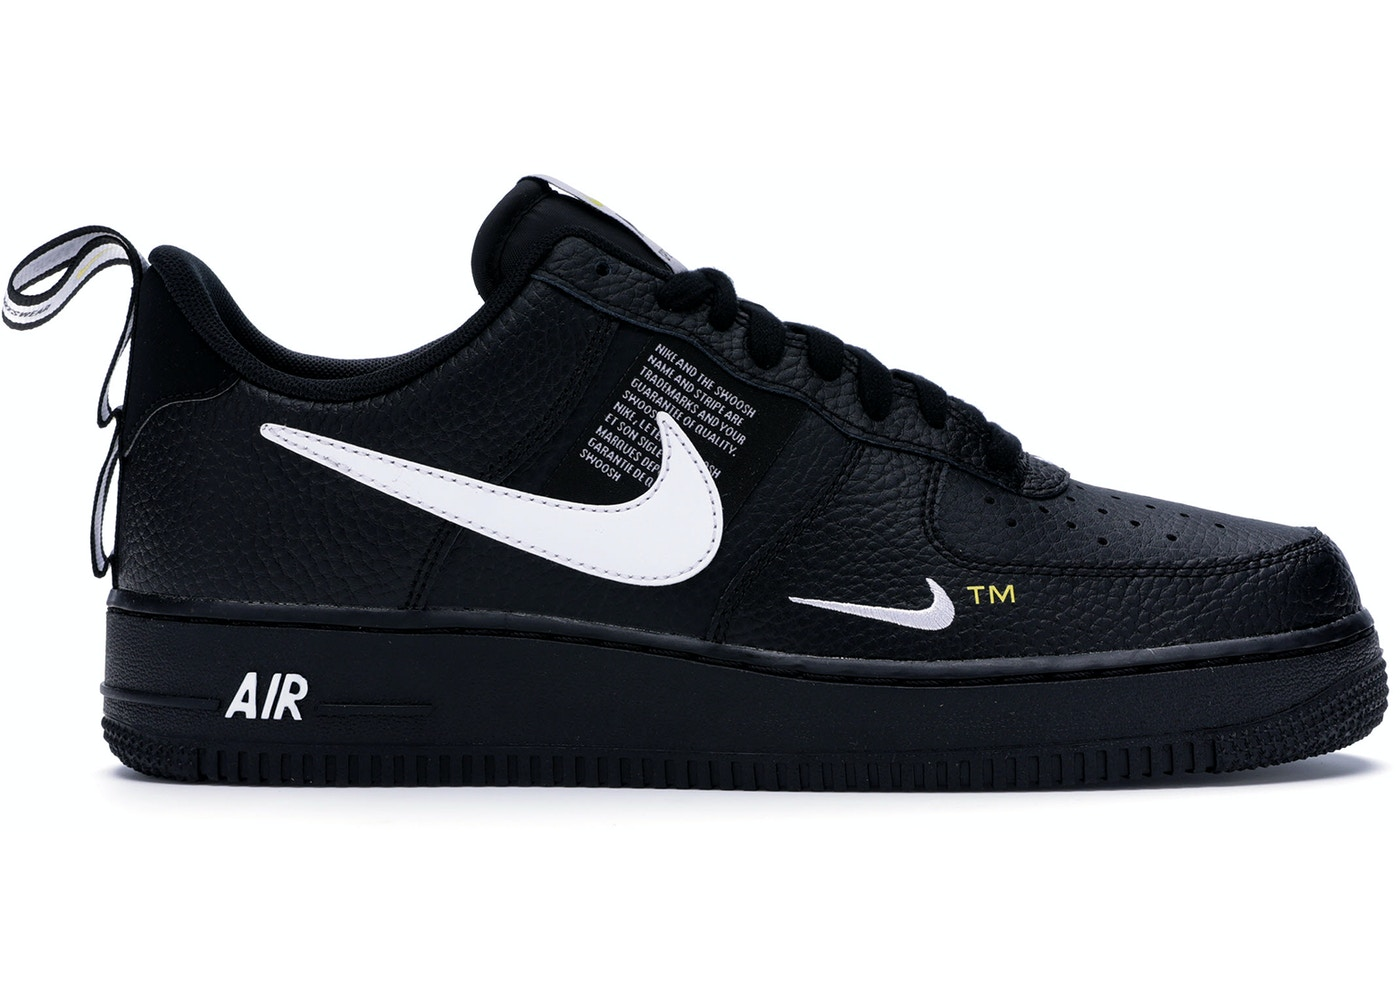 quality design 38b23 9be82 Buy Nike Air Force 1 Shoes & Deadstock Sneakers